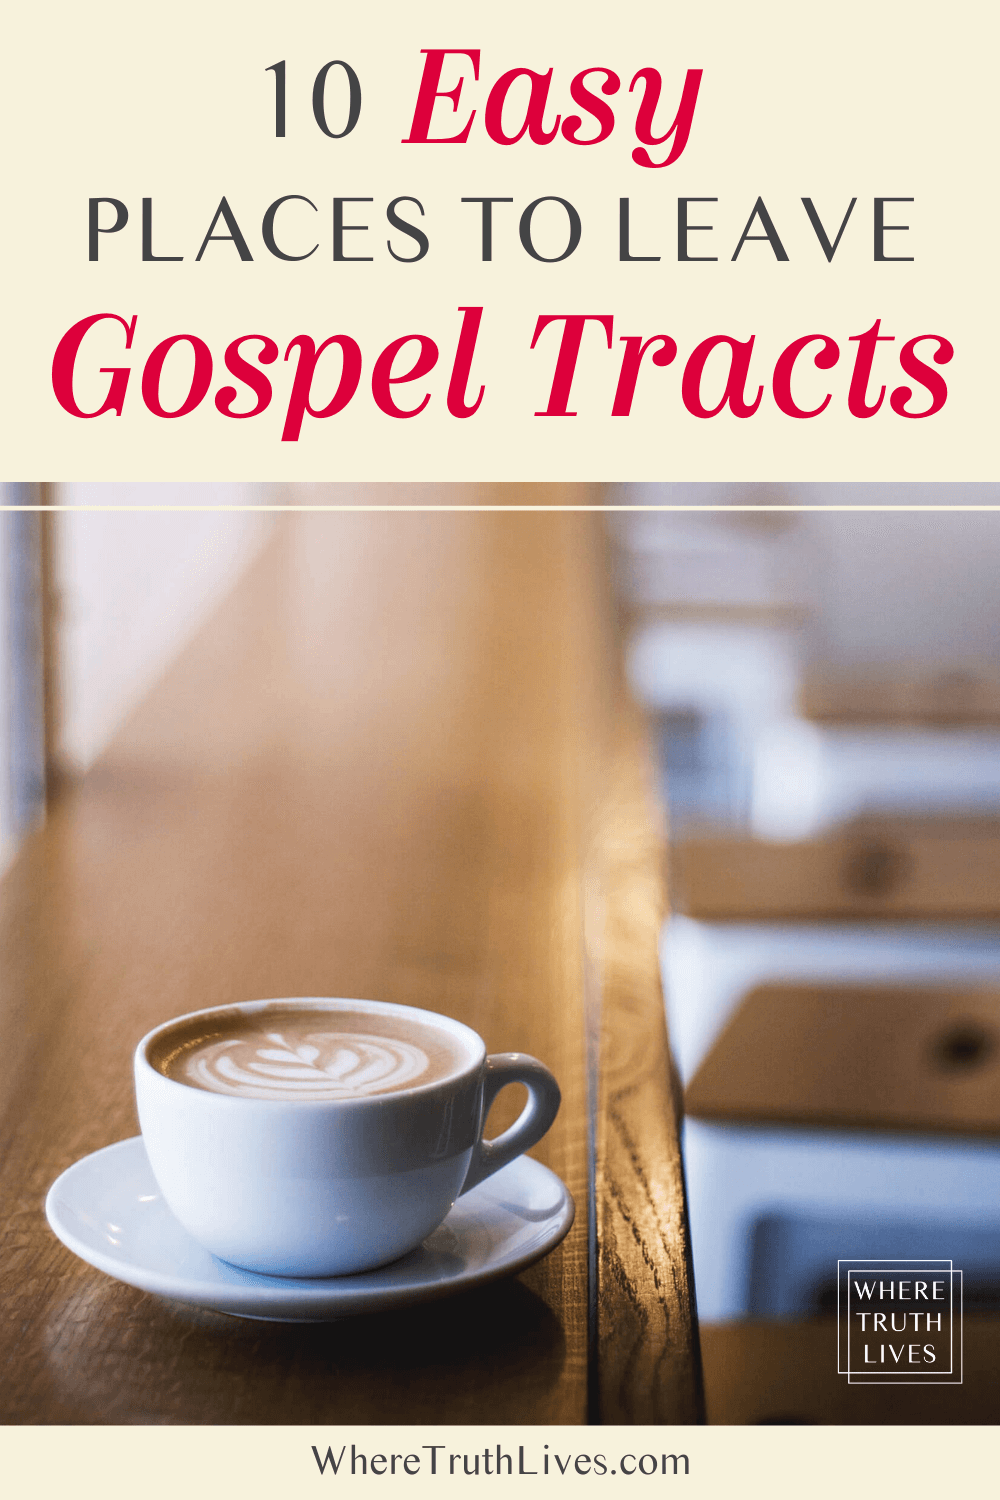 10 Easy Places To Leave Gospel Tracts